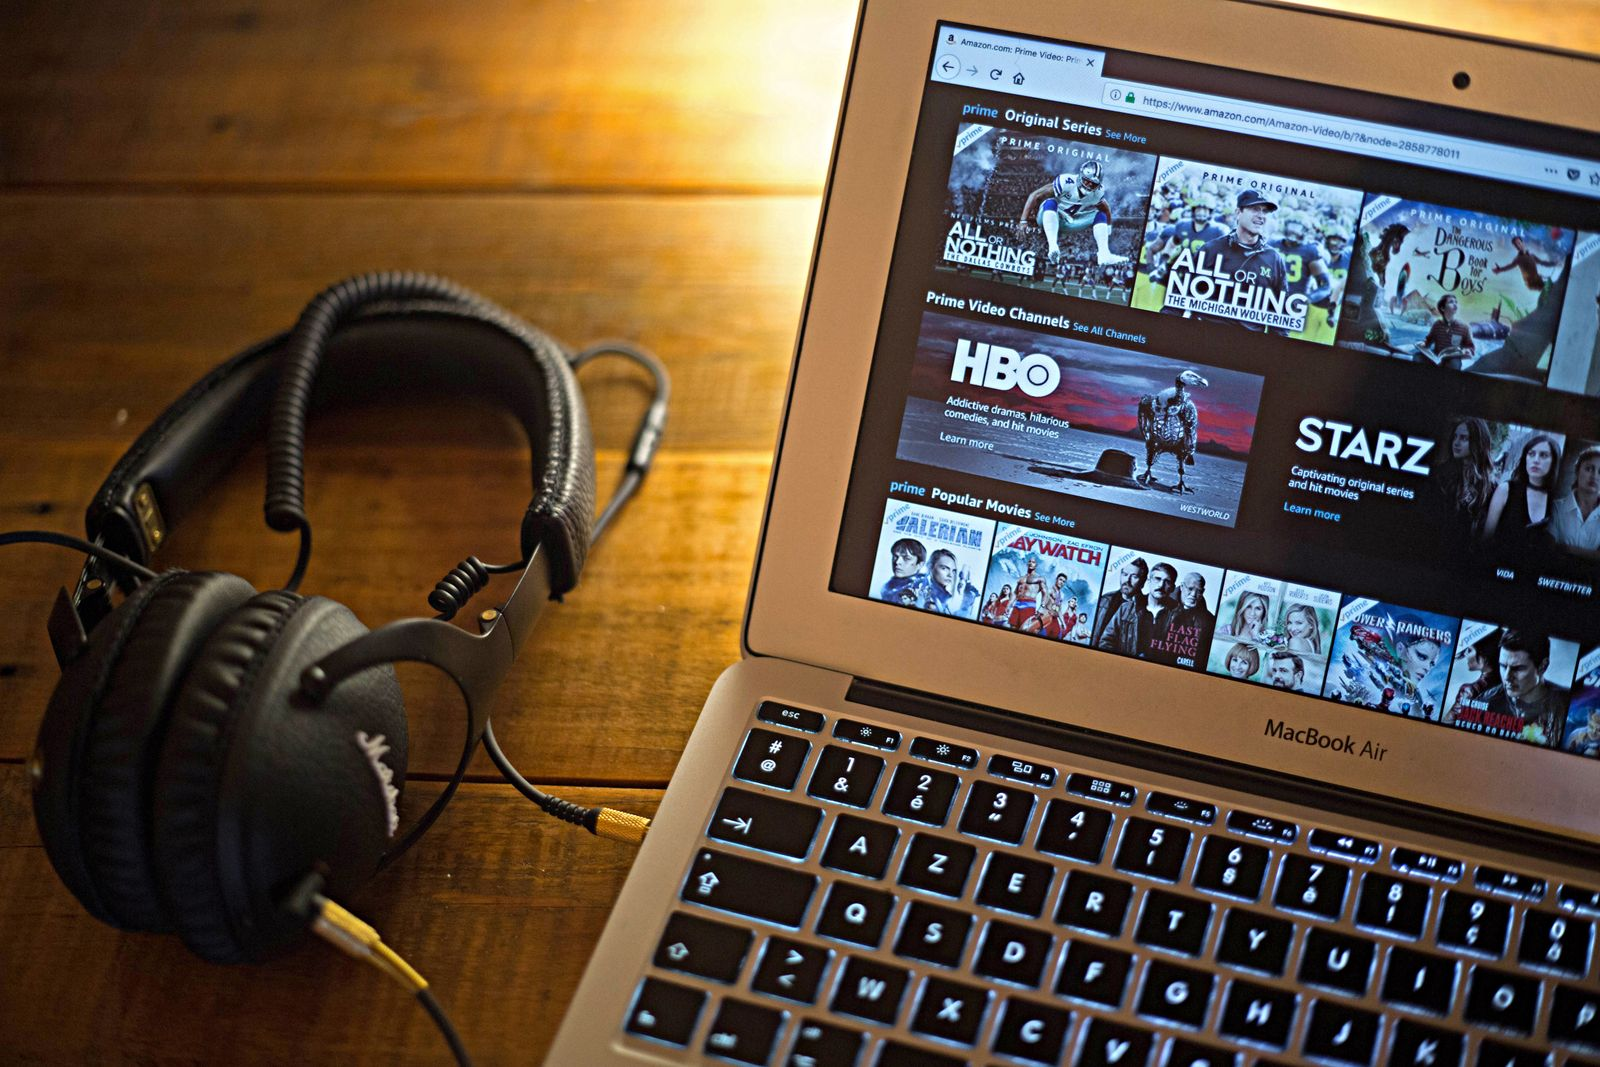 The Amazon Video (Prime Video) website seen displayed on a